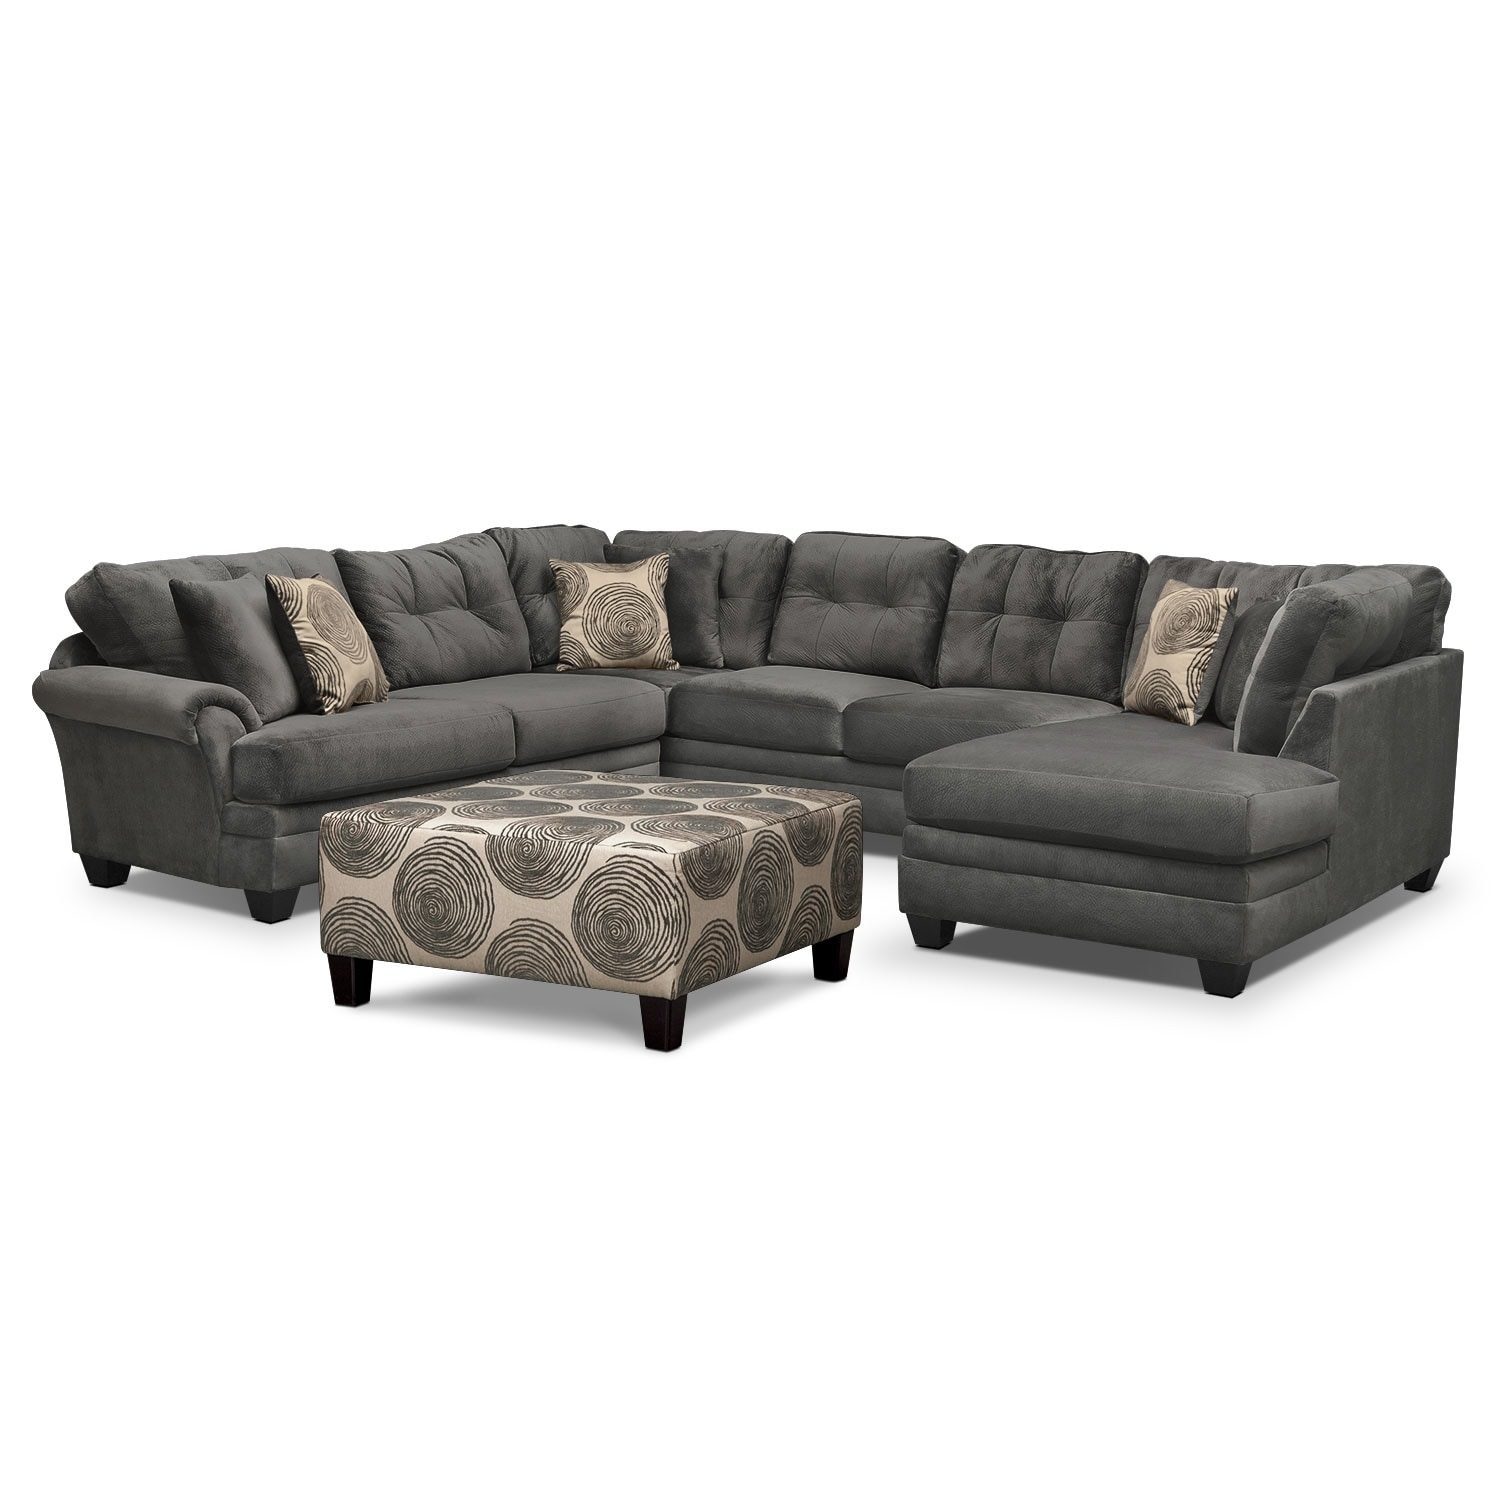 Living Room Furniture - Cordelle 3-Piece Sectional and Cocktail Ottoman Set - Gray